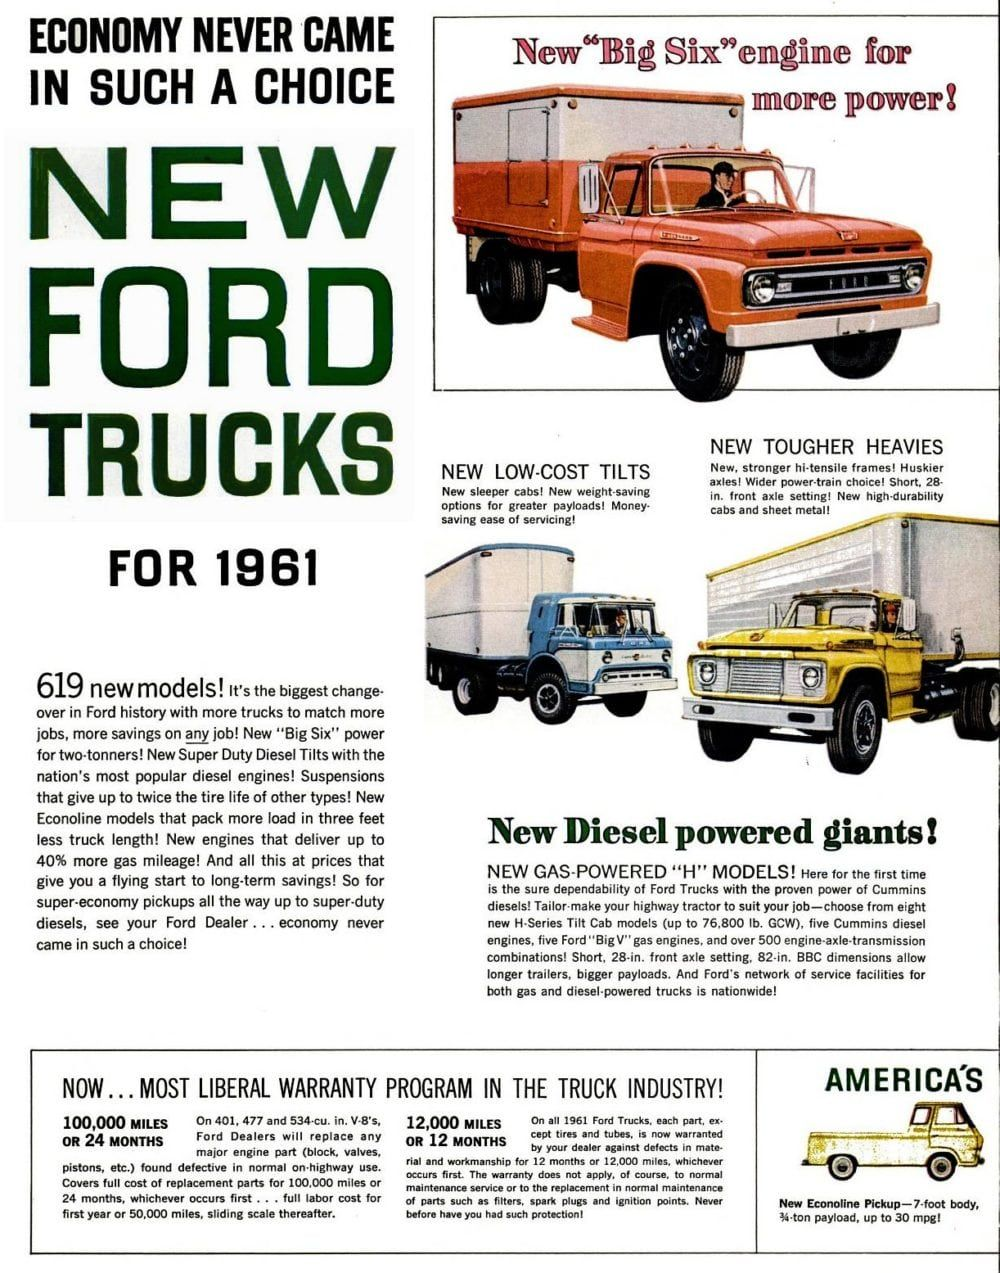 medium resolution of new ford economy never came in such a choice